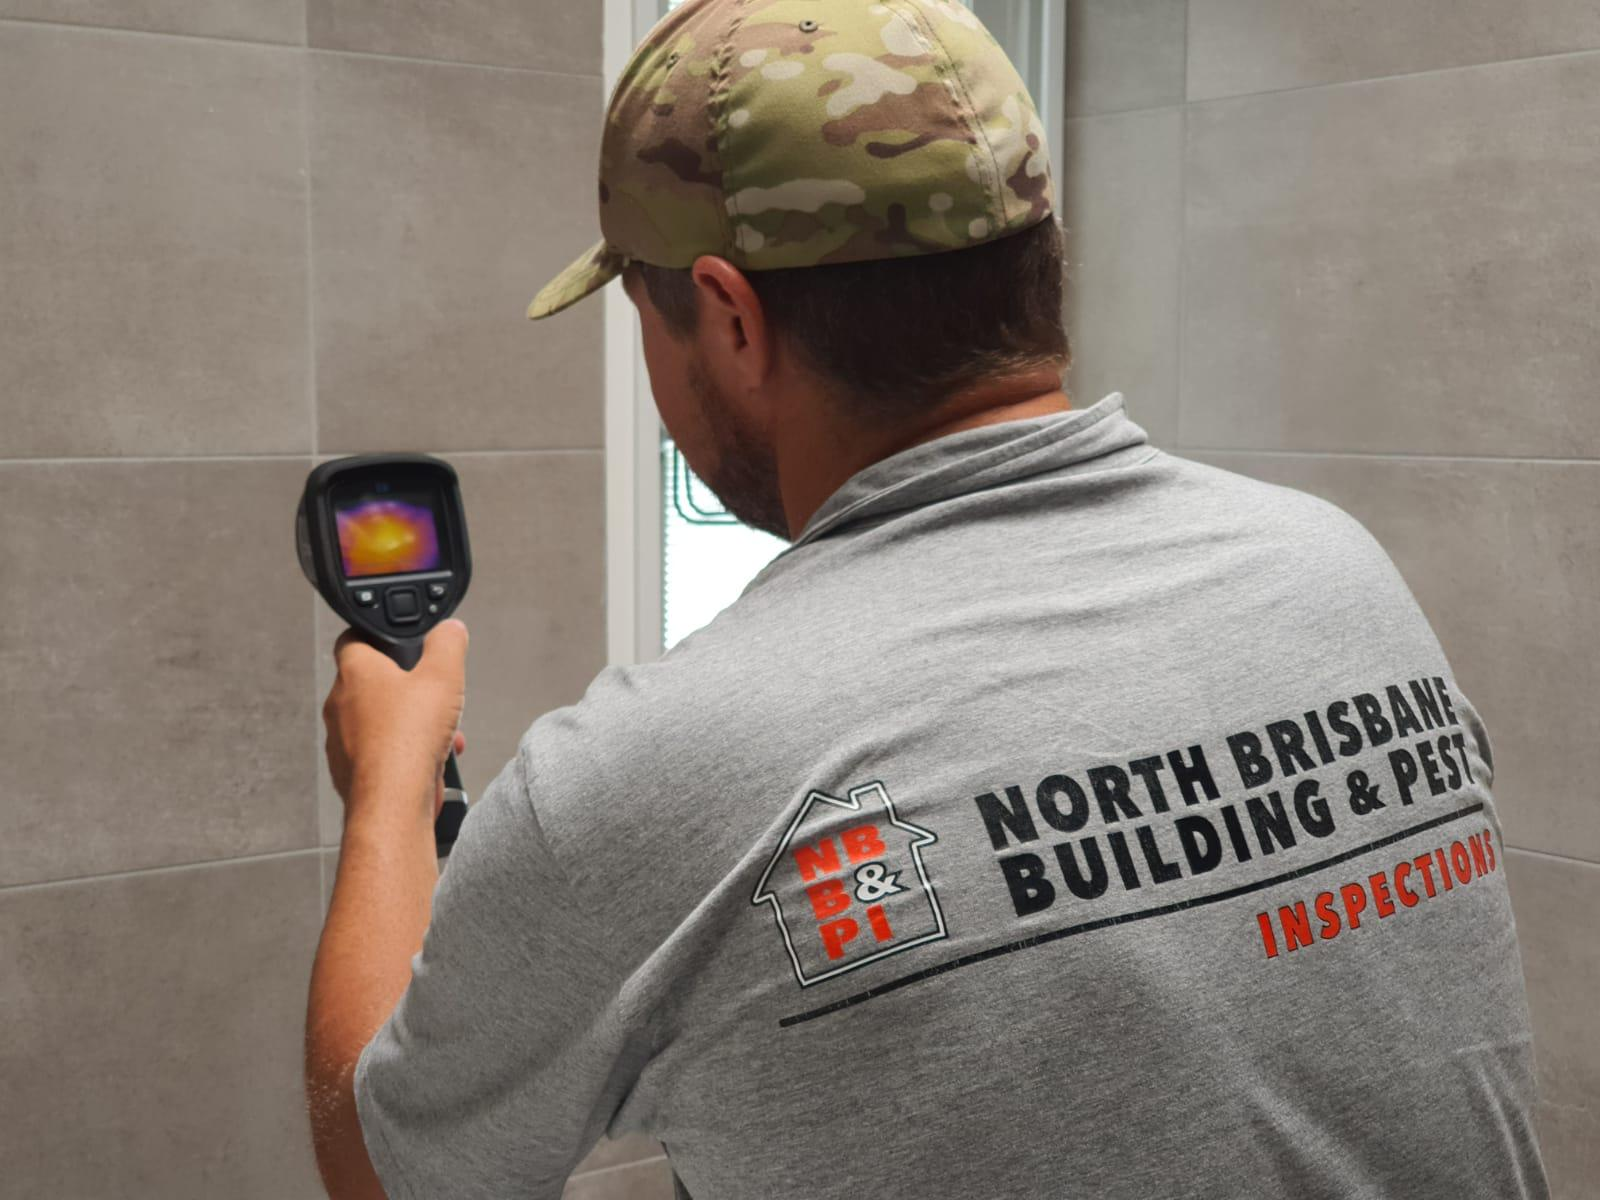 Brett is in the shower using the thermal imaging cameras to detect moisture